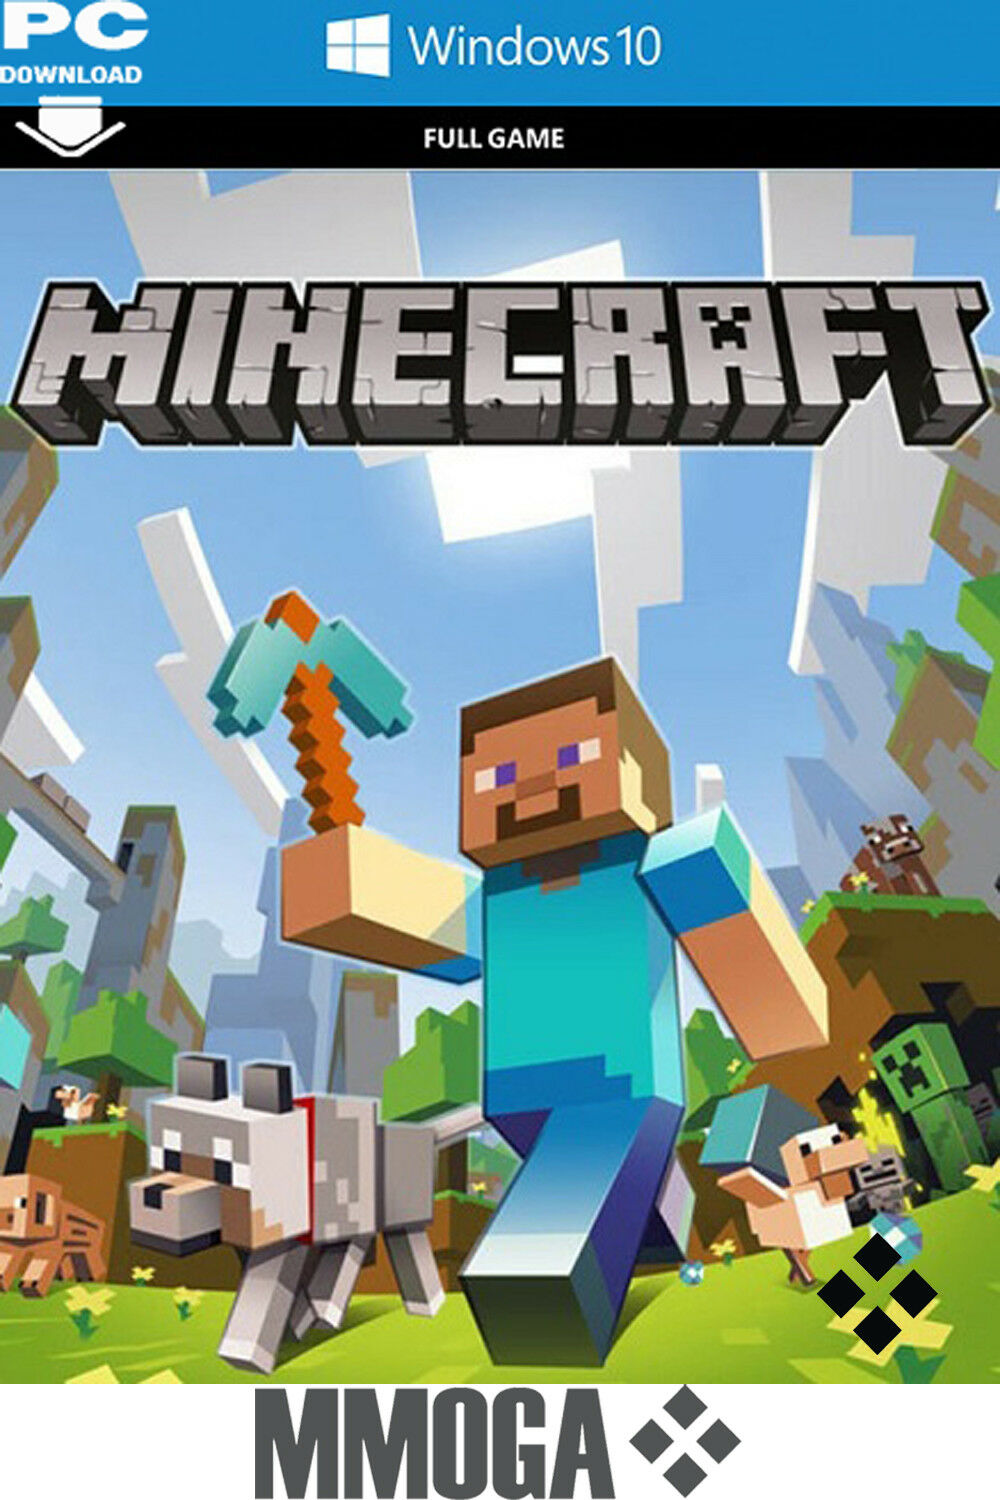 MINECRAFT WINDOWS Edition Key PC Download Spiel Code DEEU - Minecraft spielen download